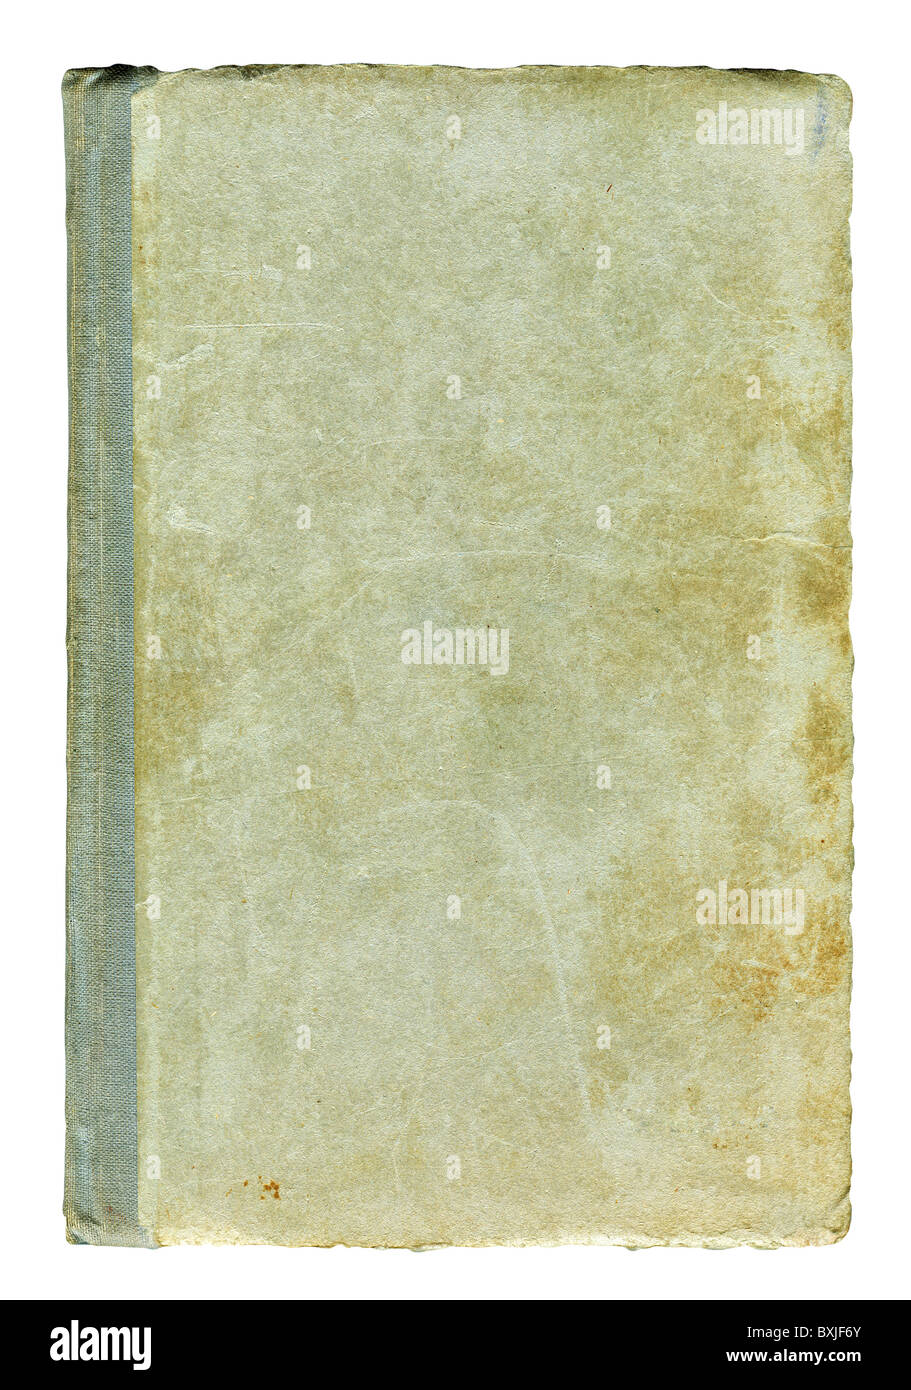 Obsolete dirty scuffed book cover isolated over white - Stock Image